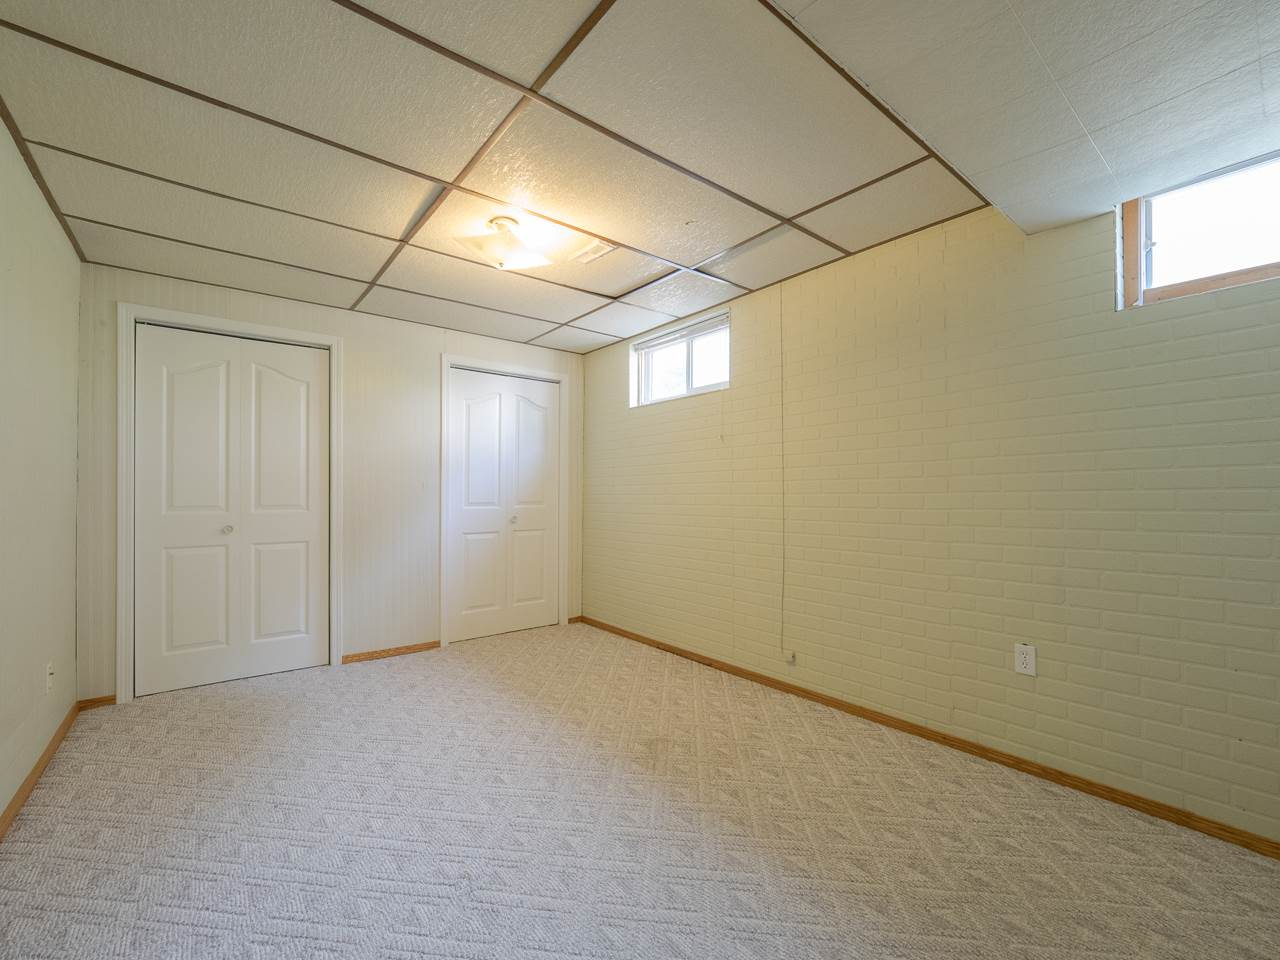 Bedroom in basement.